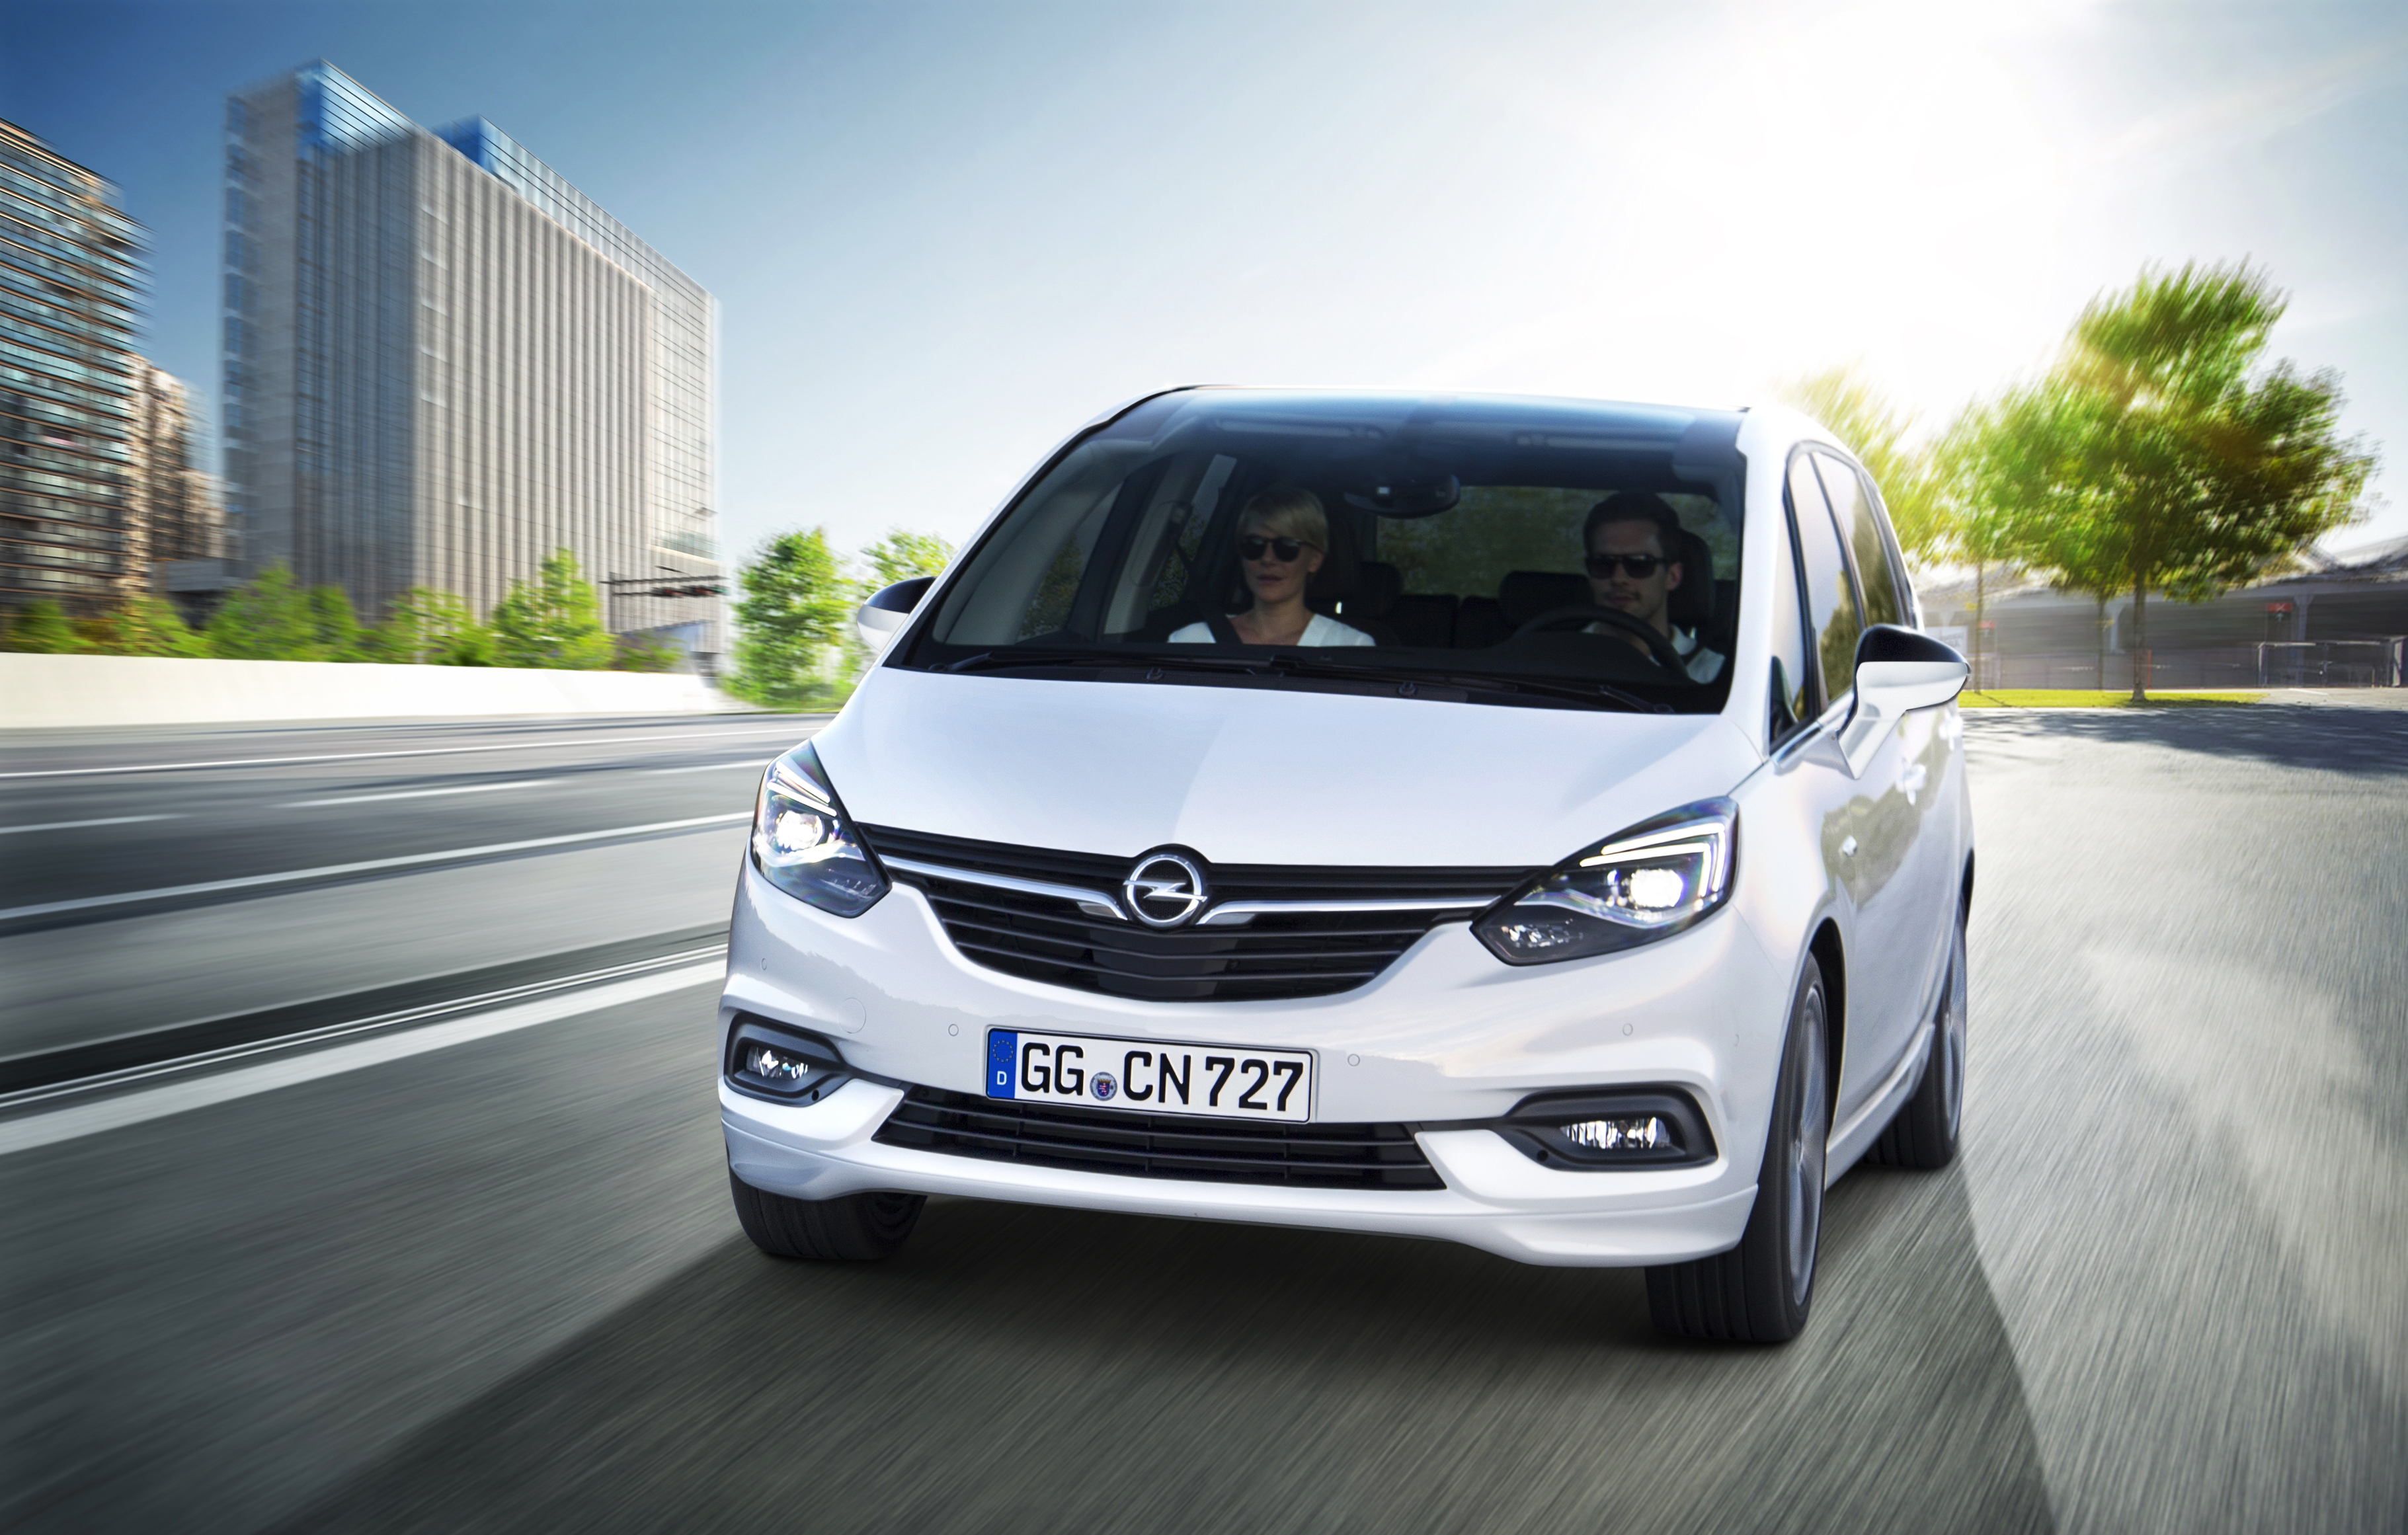 opel vauxhall zafira facelift unveiled with new face image. Black Bedroom Furniture Sets. Home Design Ideas